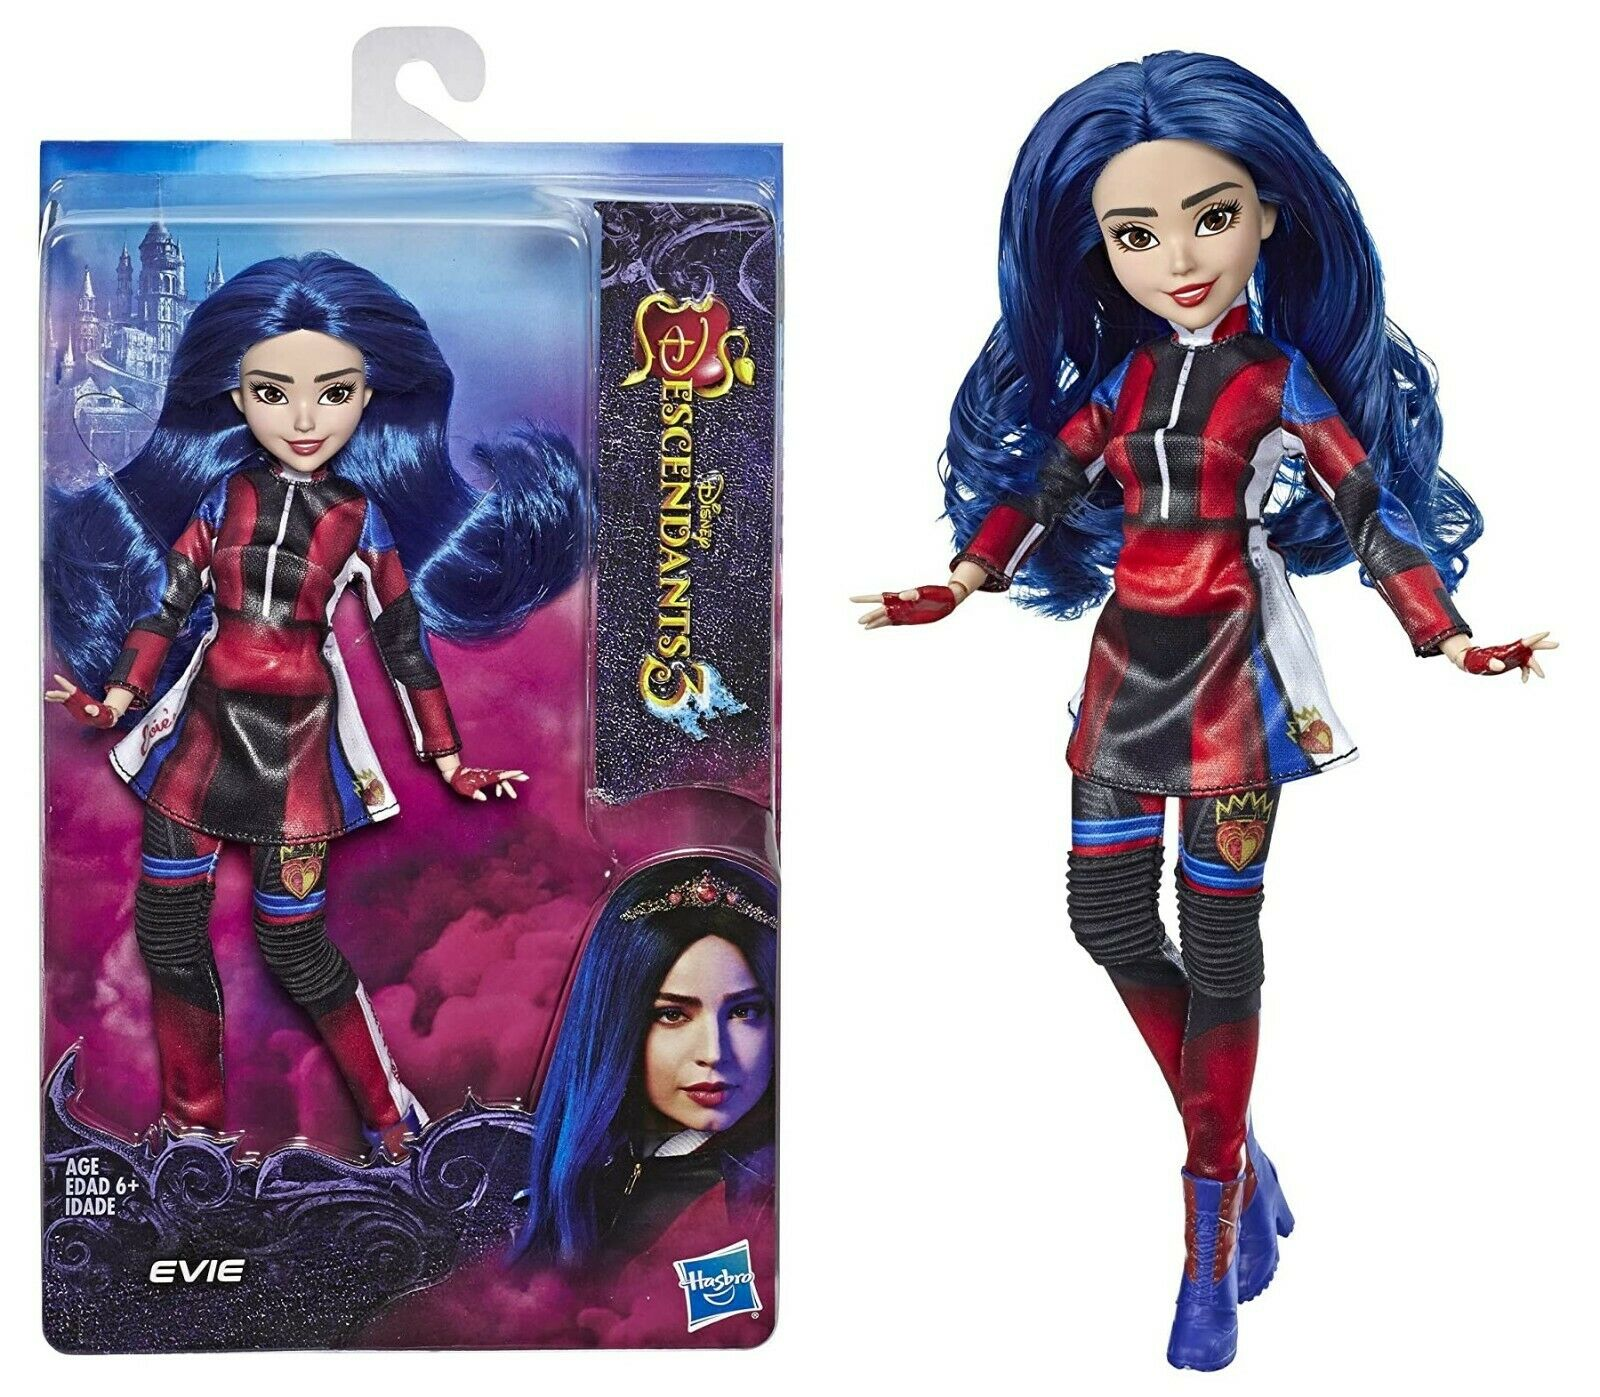 Disney Descendants 3 Evie  Doll  Brand New